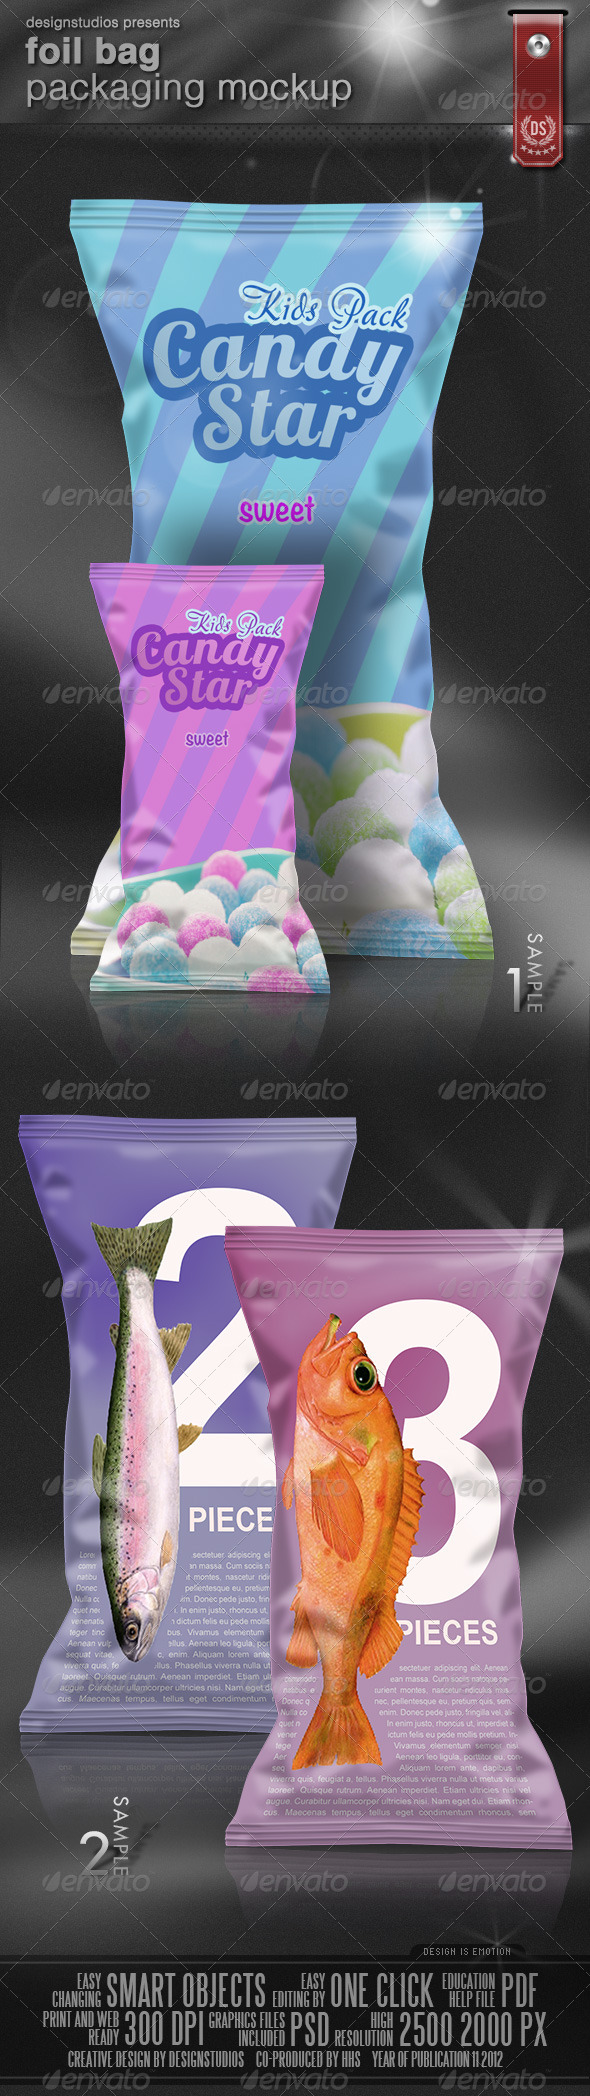 Foil Bag Packaging Mock-Up